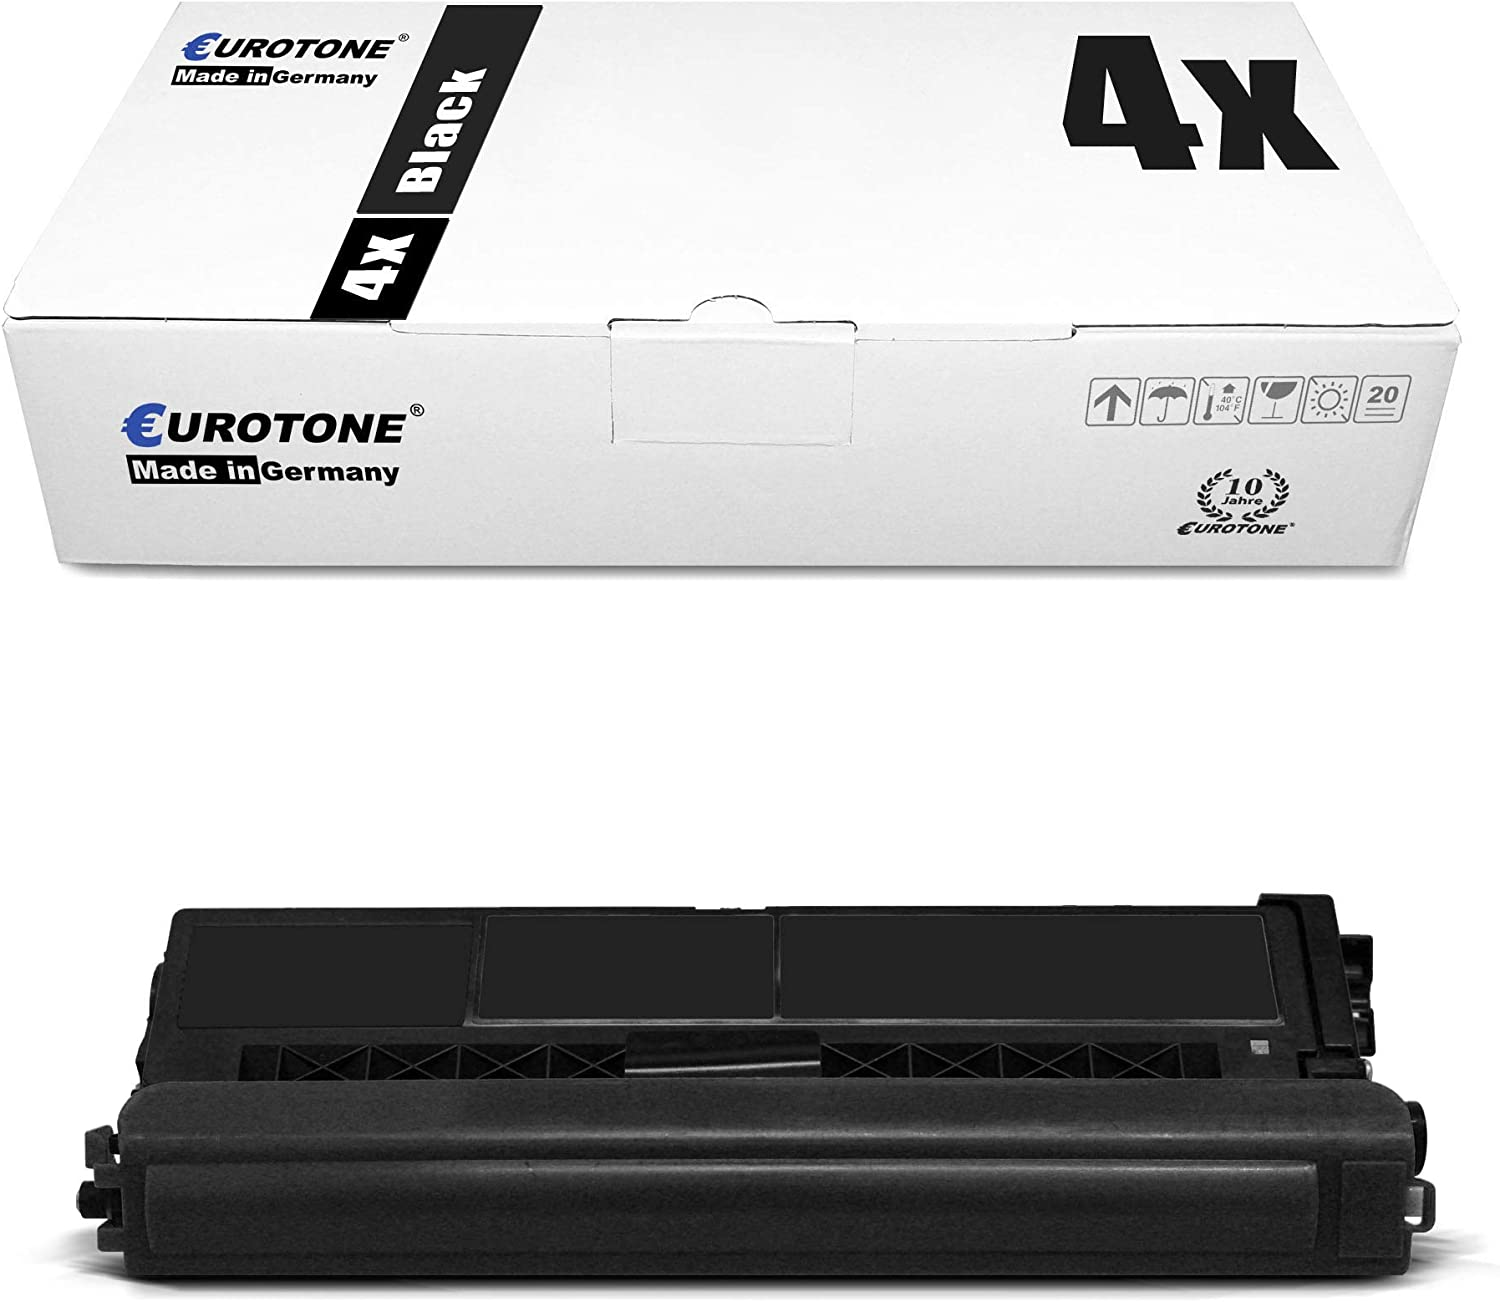 8X Eurotone Toner for Brother MFC-L 8900 Replaces TN-426 TN426 Set Black Cyan Magenta Yellow